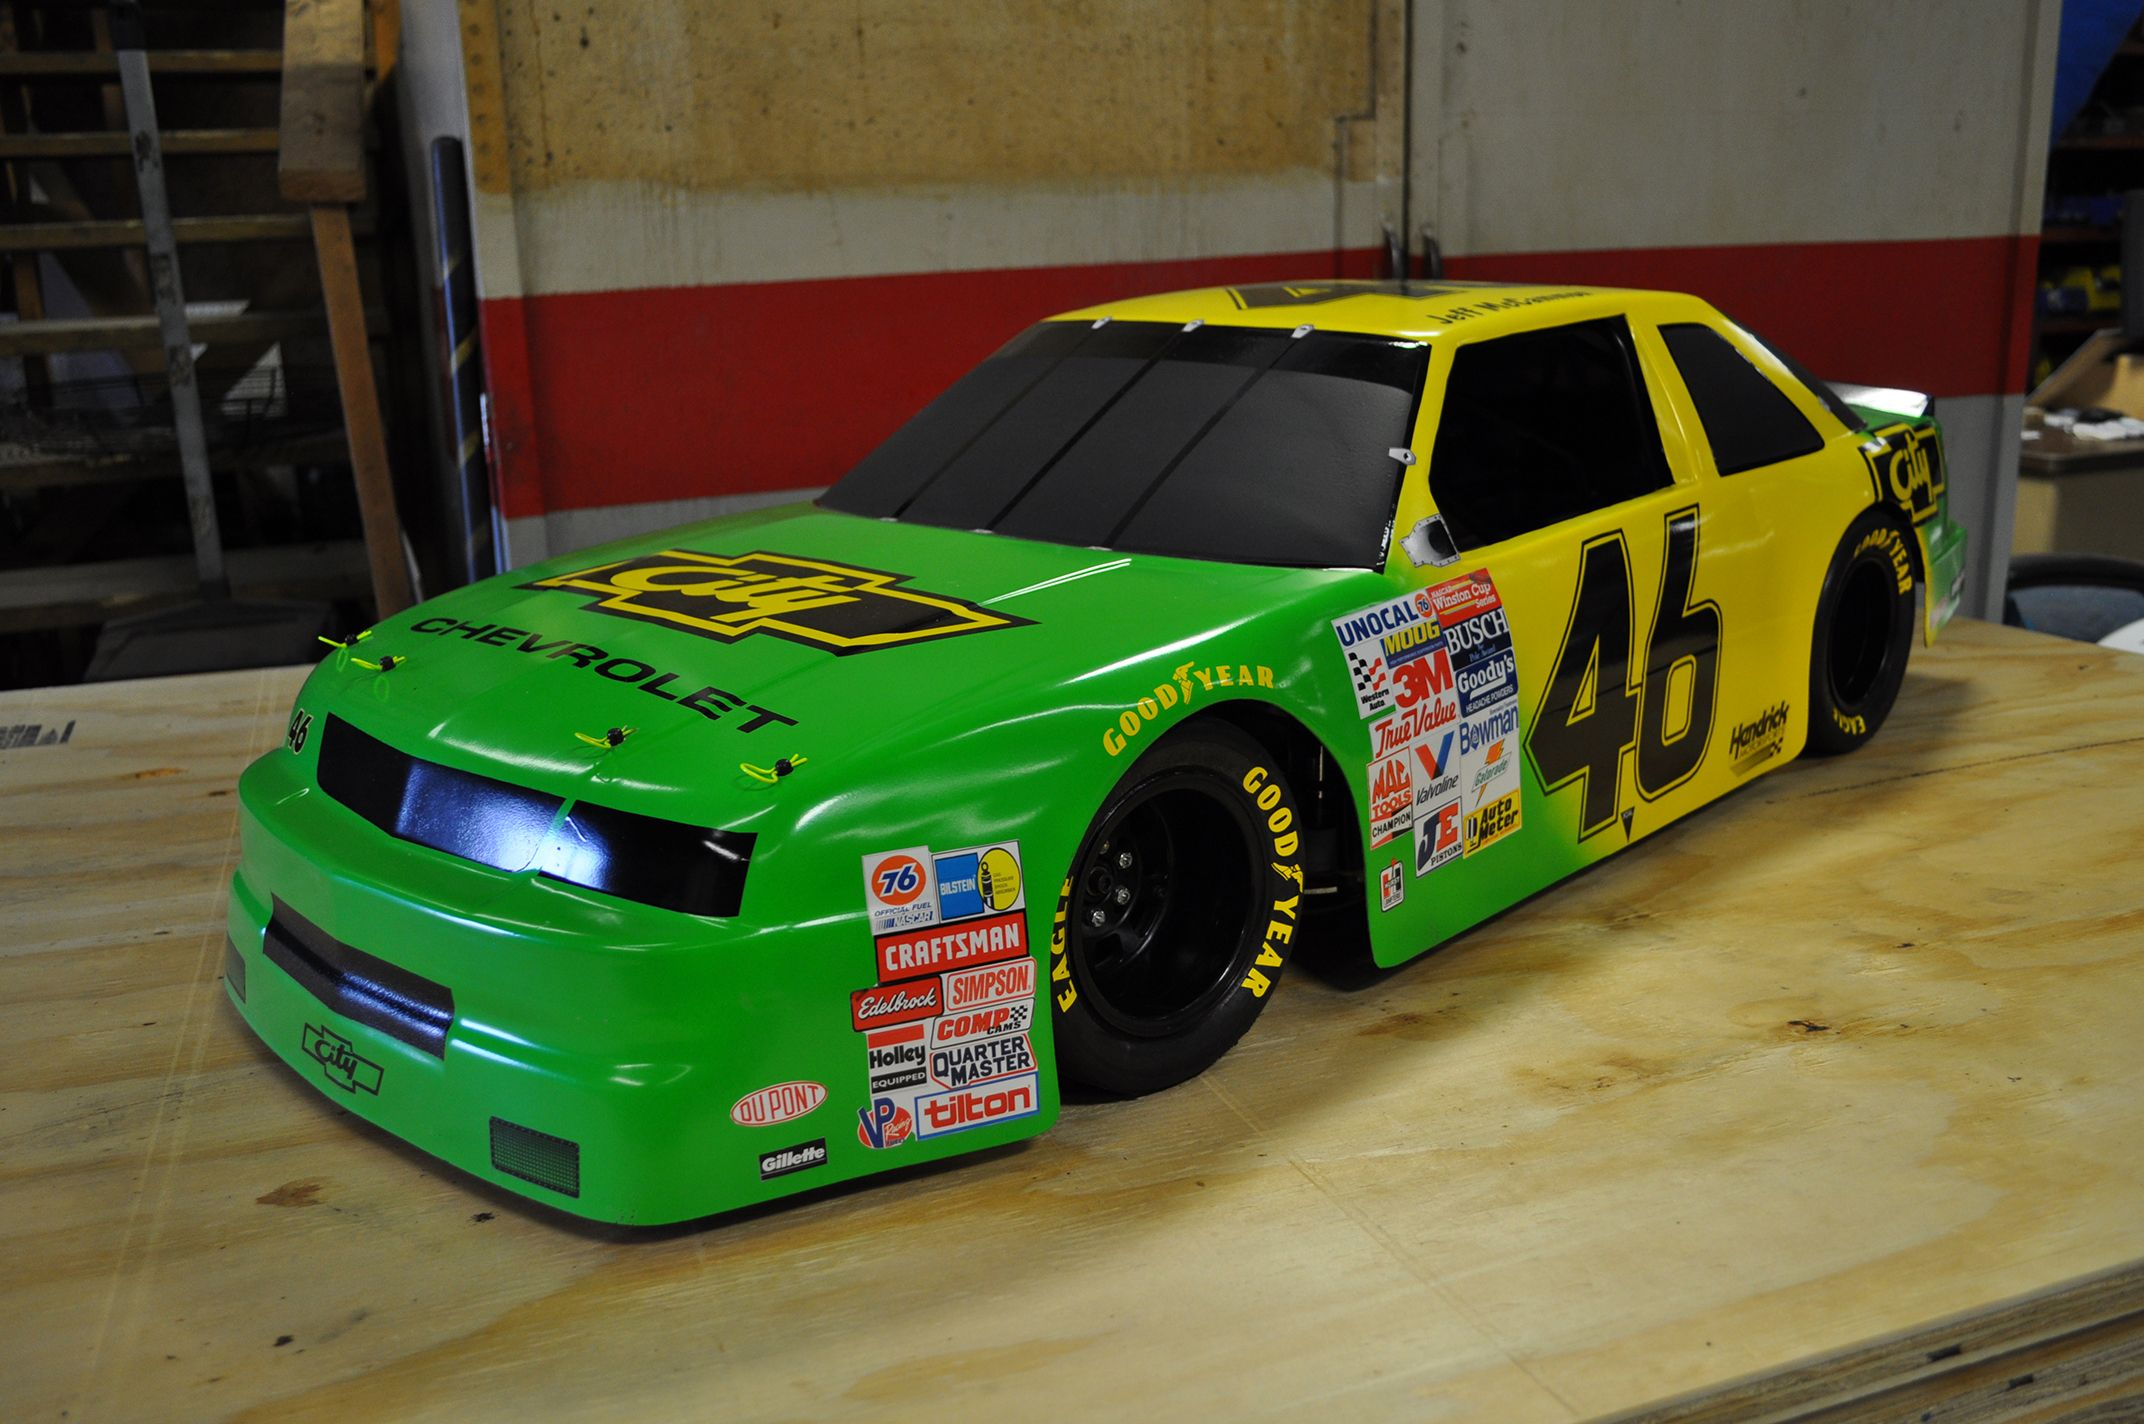 I Have This Same Body From The Early 90s Days Of Thunder Lumina